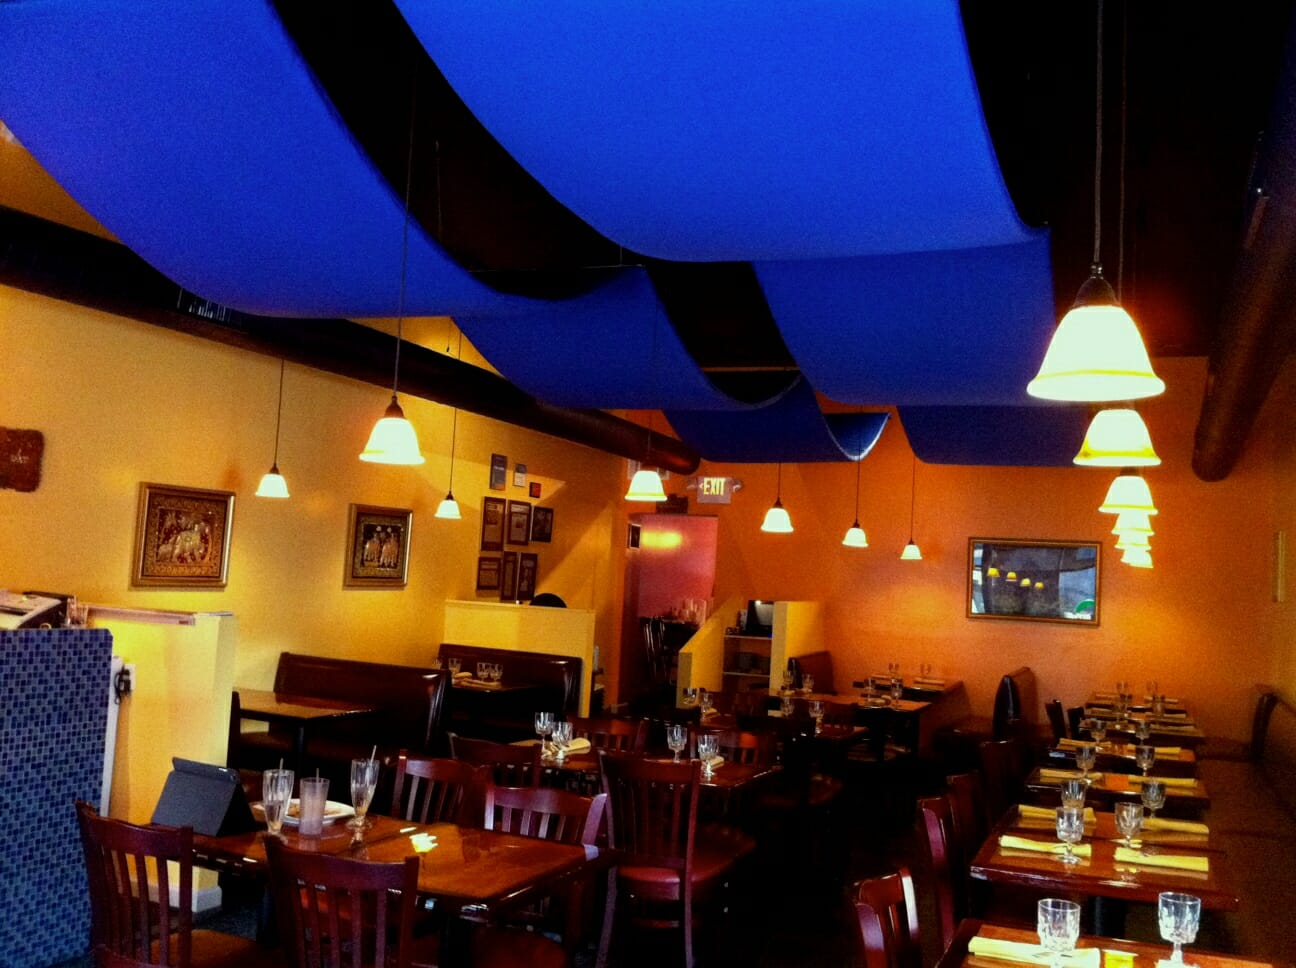 Acoustic Ceiling Banners  Sound Banners  Acoustical Surfaces